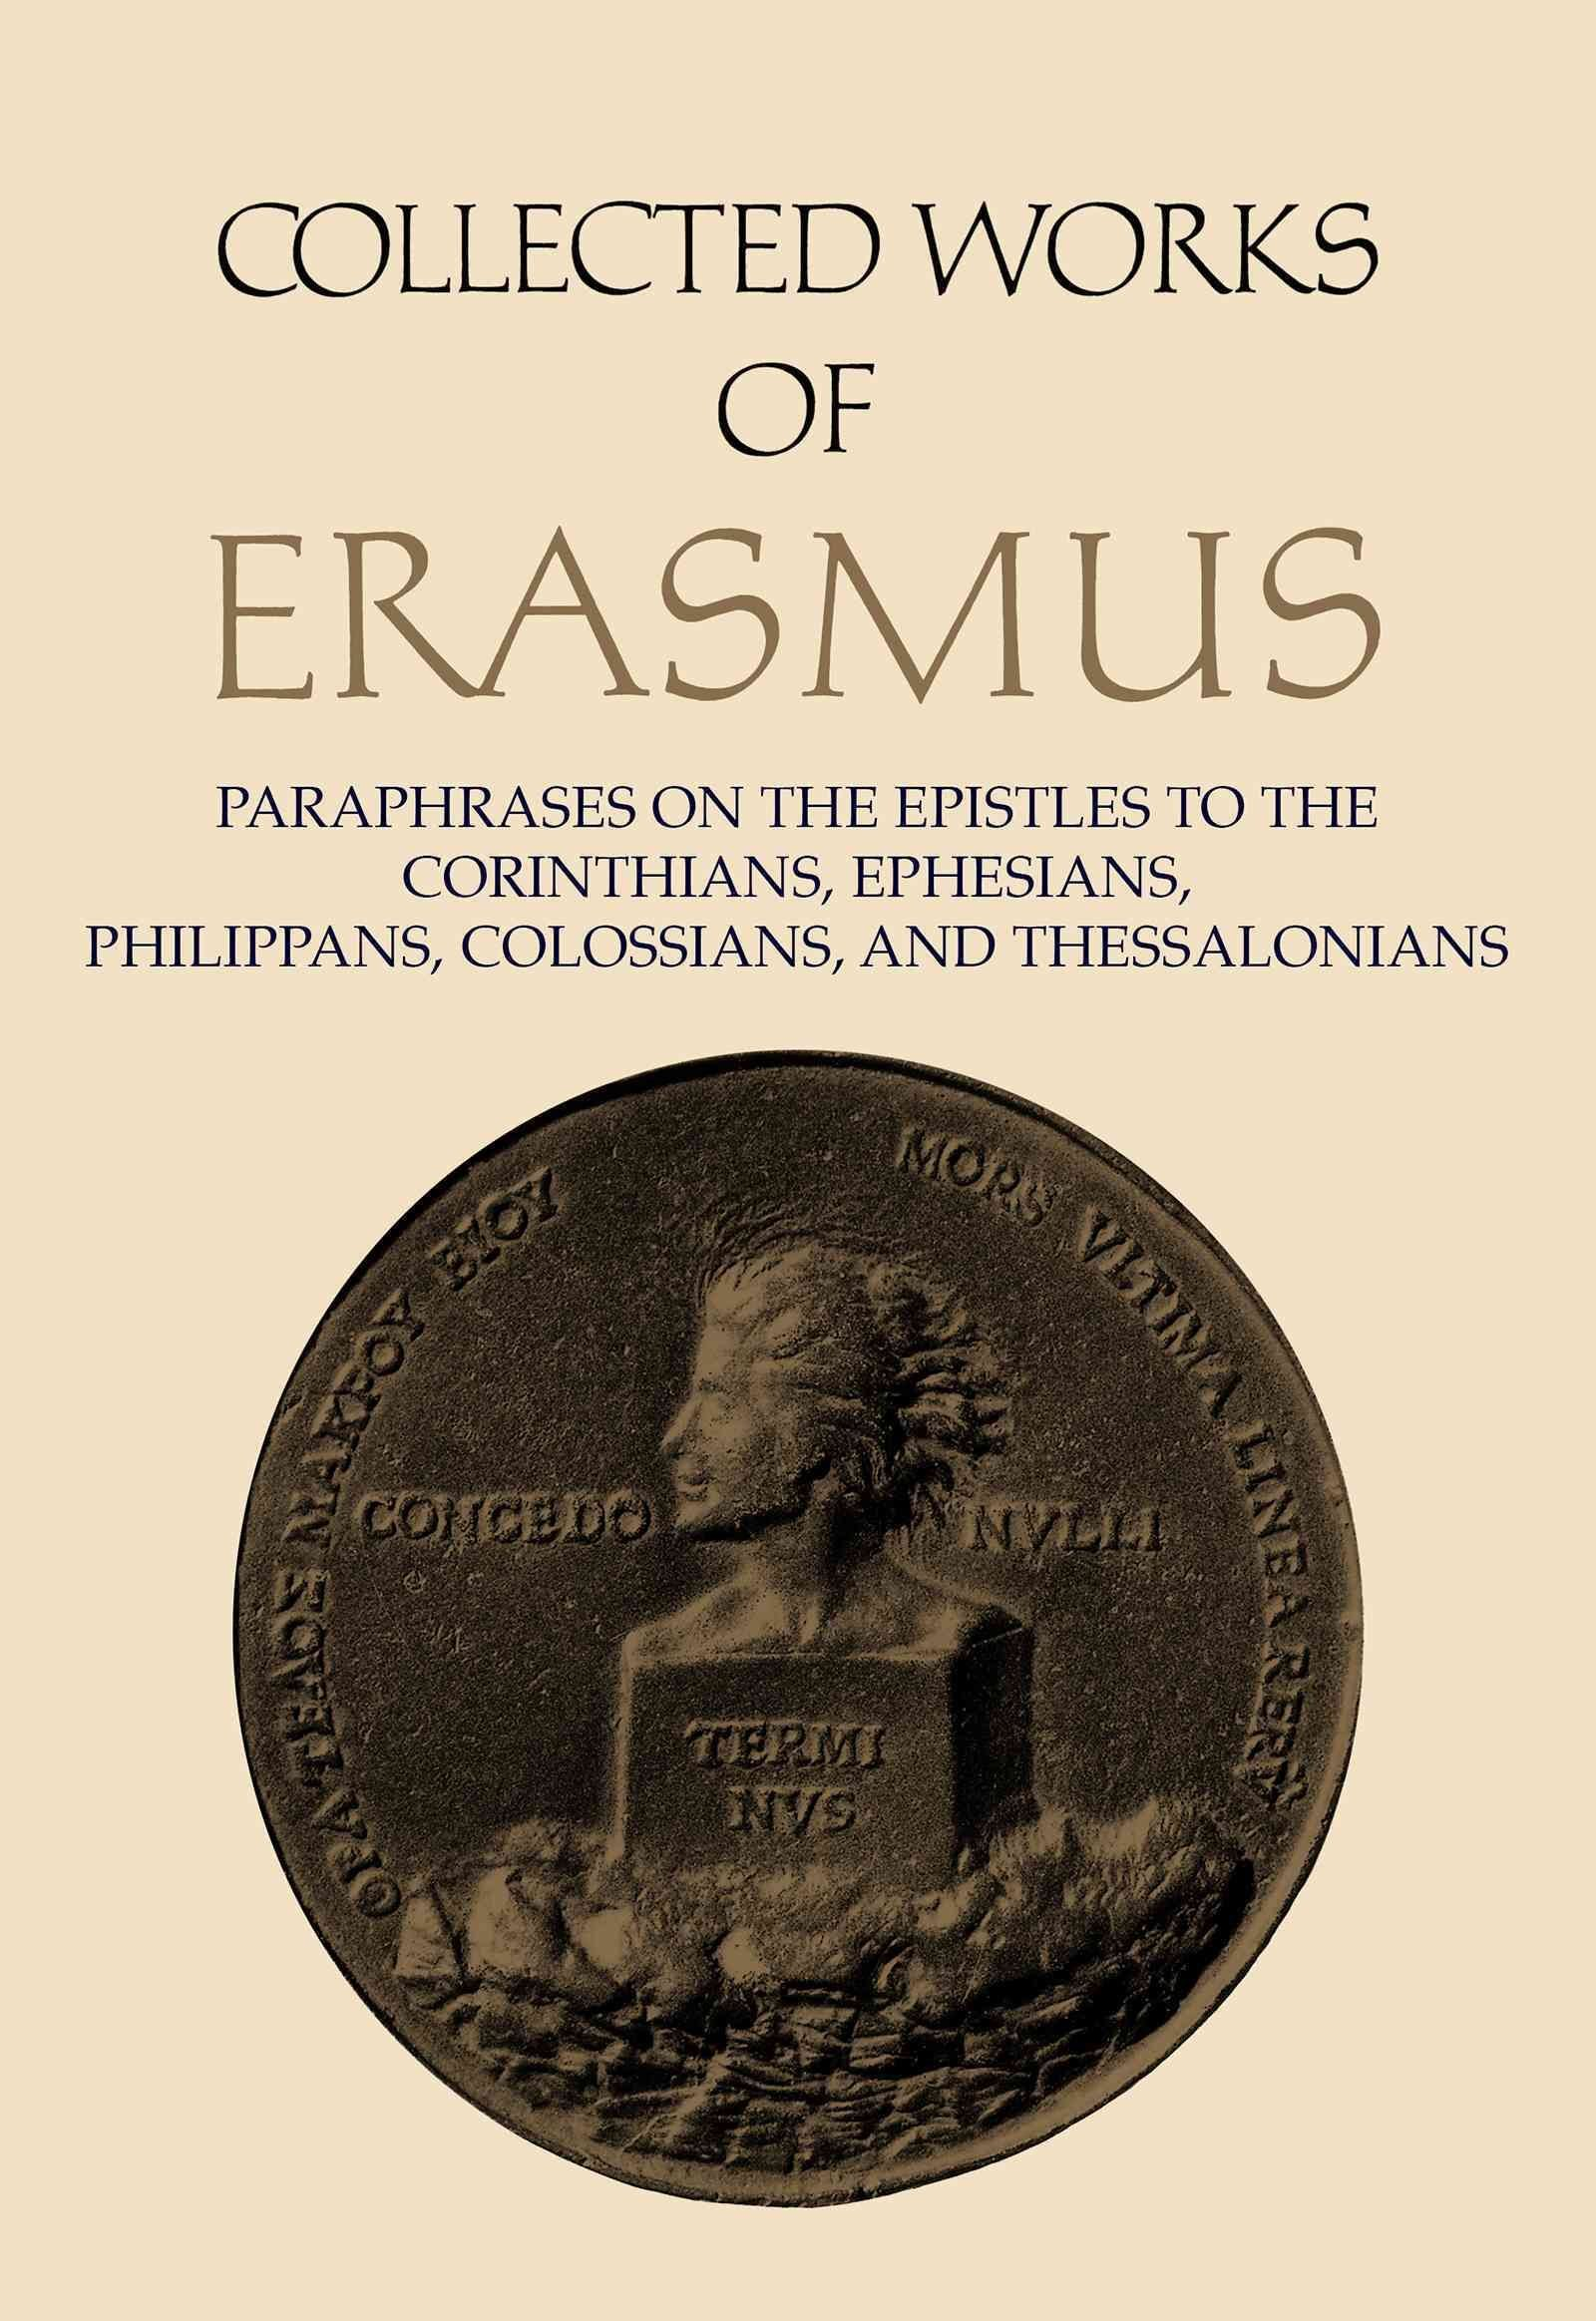 Paraphrases on the Epistles to the Corinthians, Ephesians, Philippans, Colossians, and Thessalonians - Desiderius Erasmus